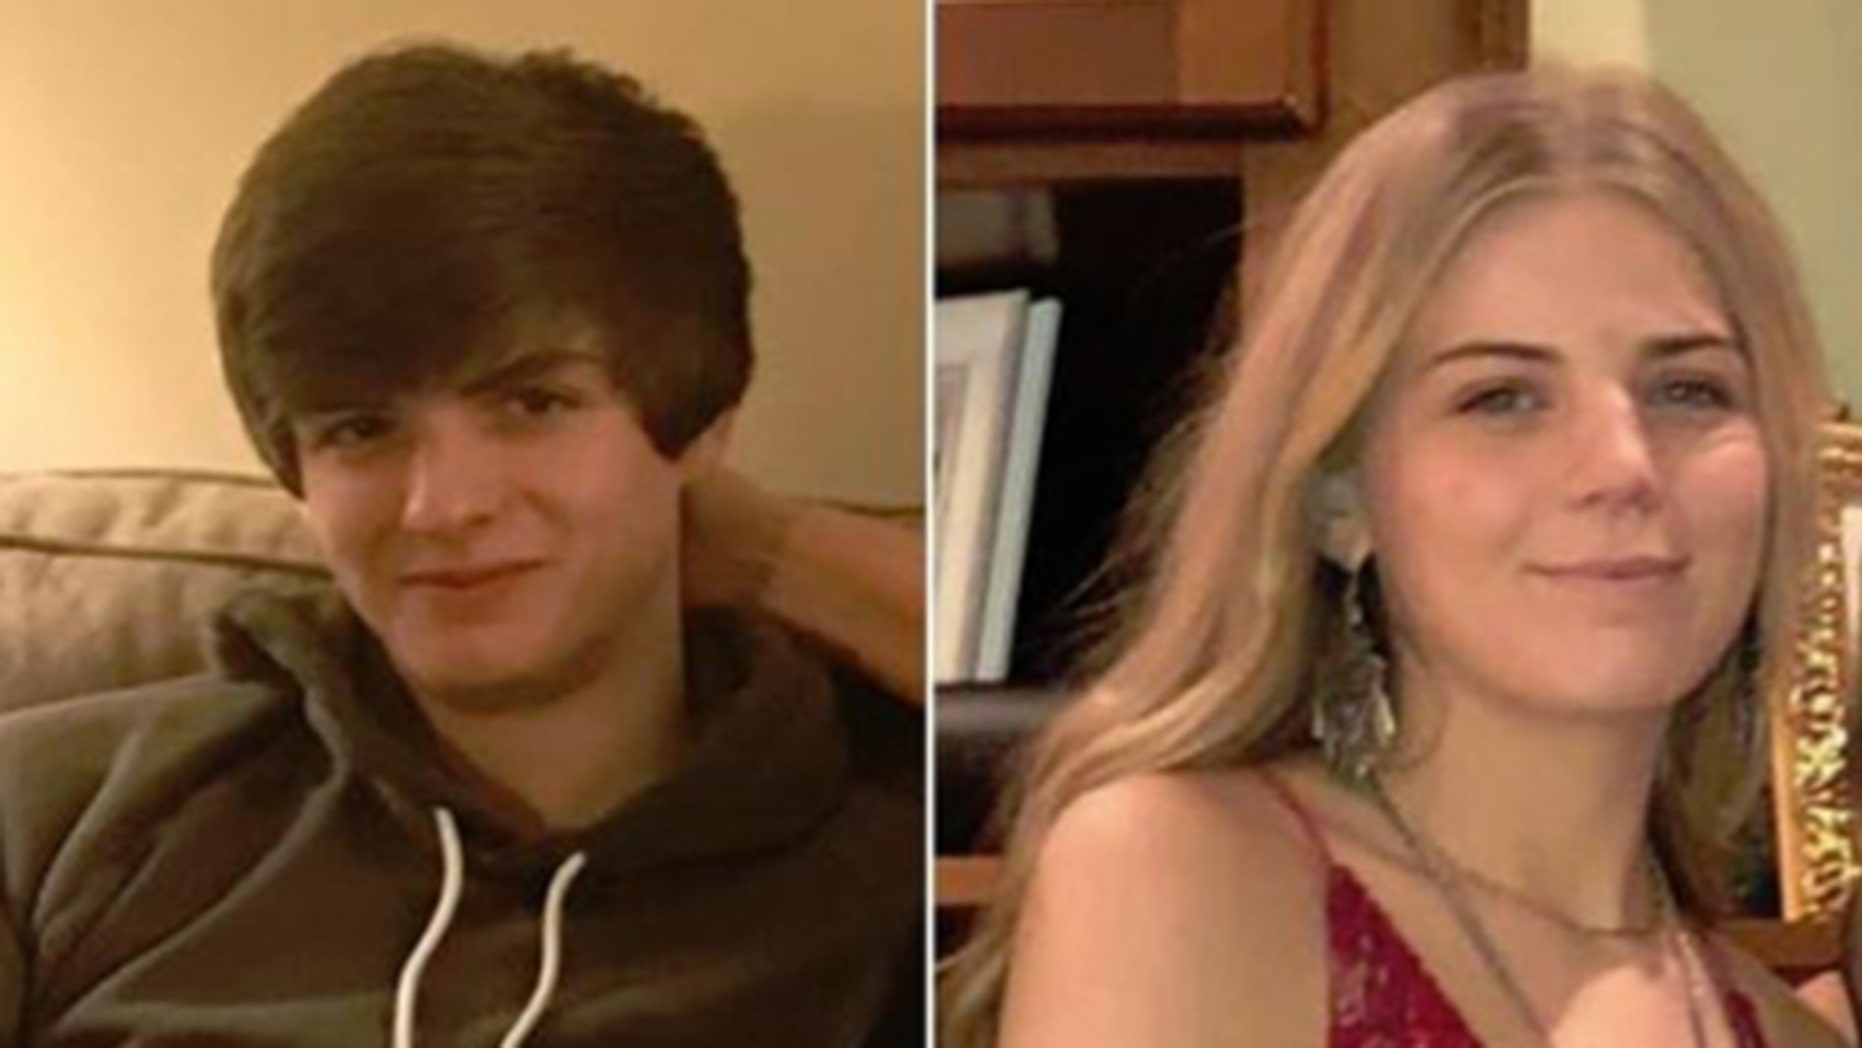 A teen is facing murder charges in Indiana in last week's disappearance of Thomas Grill, 18, (l.) and his girlfriend, Molley Lanham, 19, (r.).